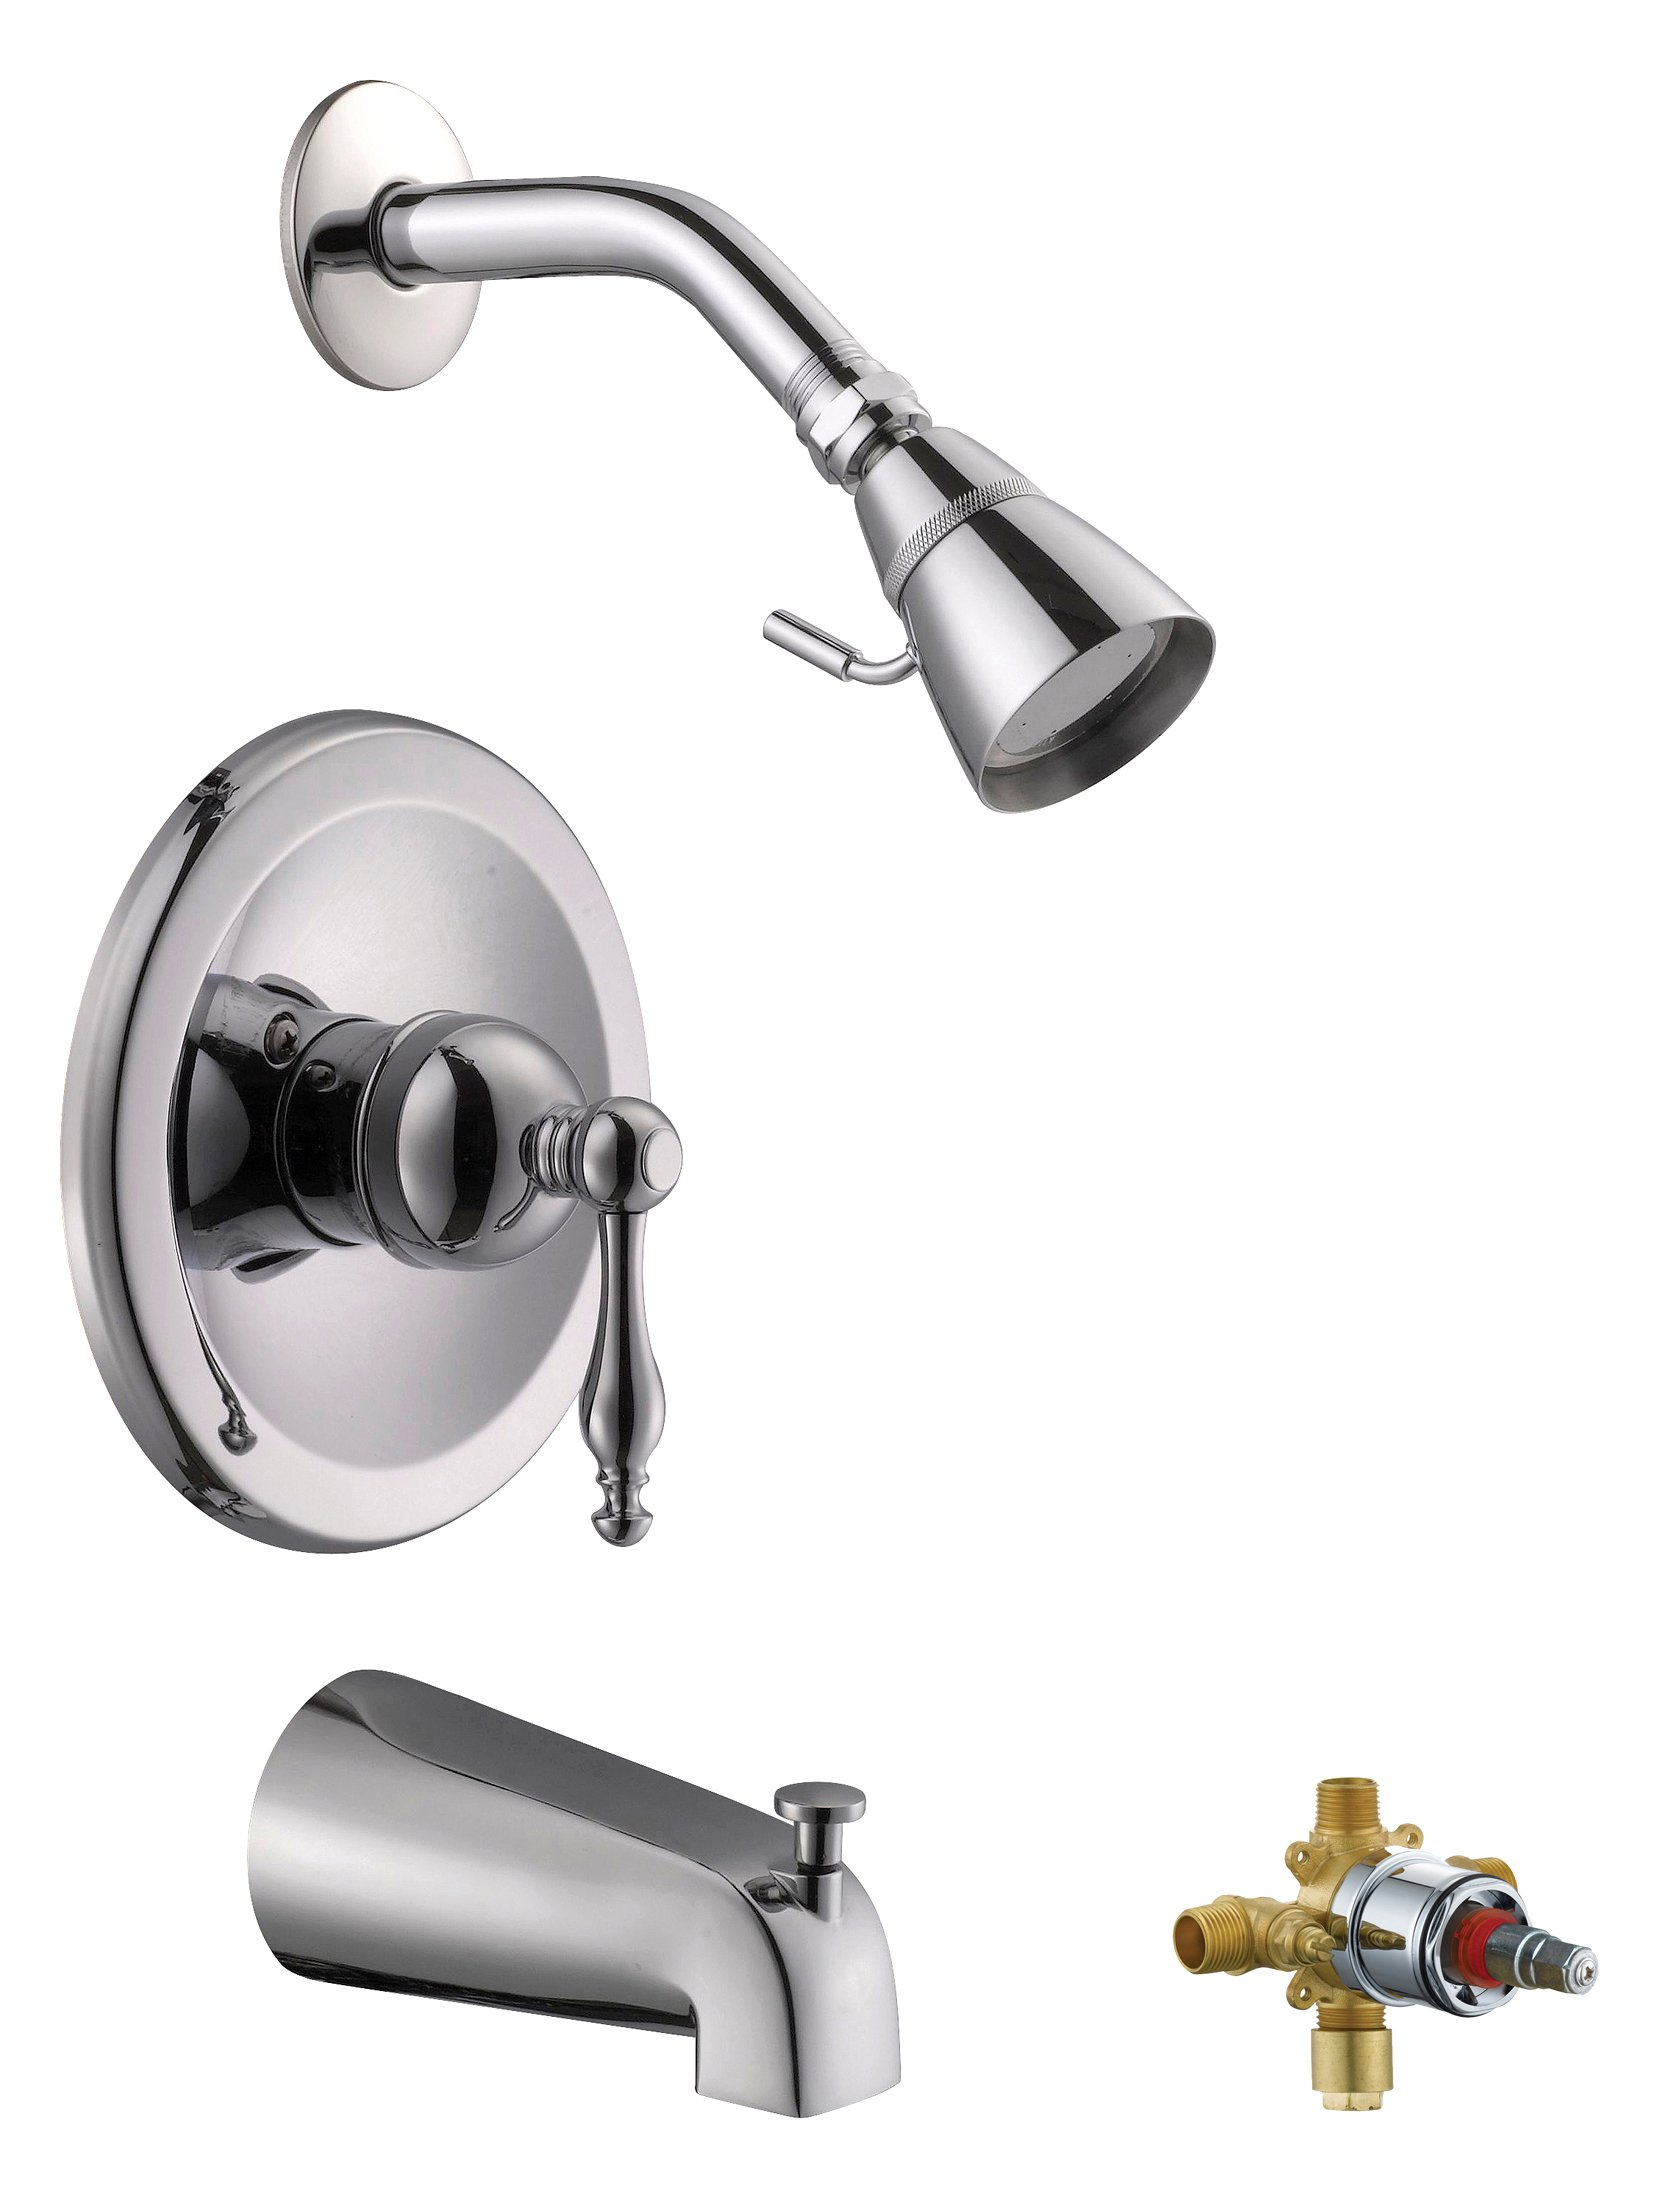 Design House 546036 Saratoga T & S Faucet, Polished Chrome, Includes Complete Installation Kit with Valve by Design House